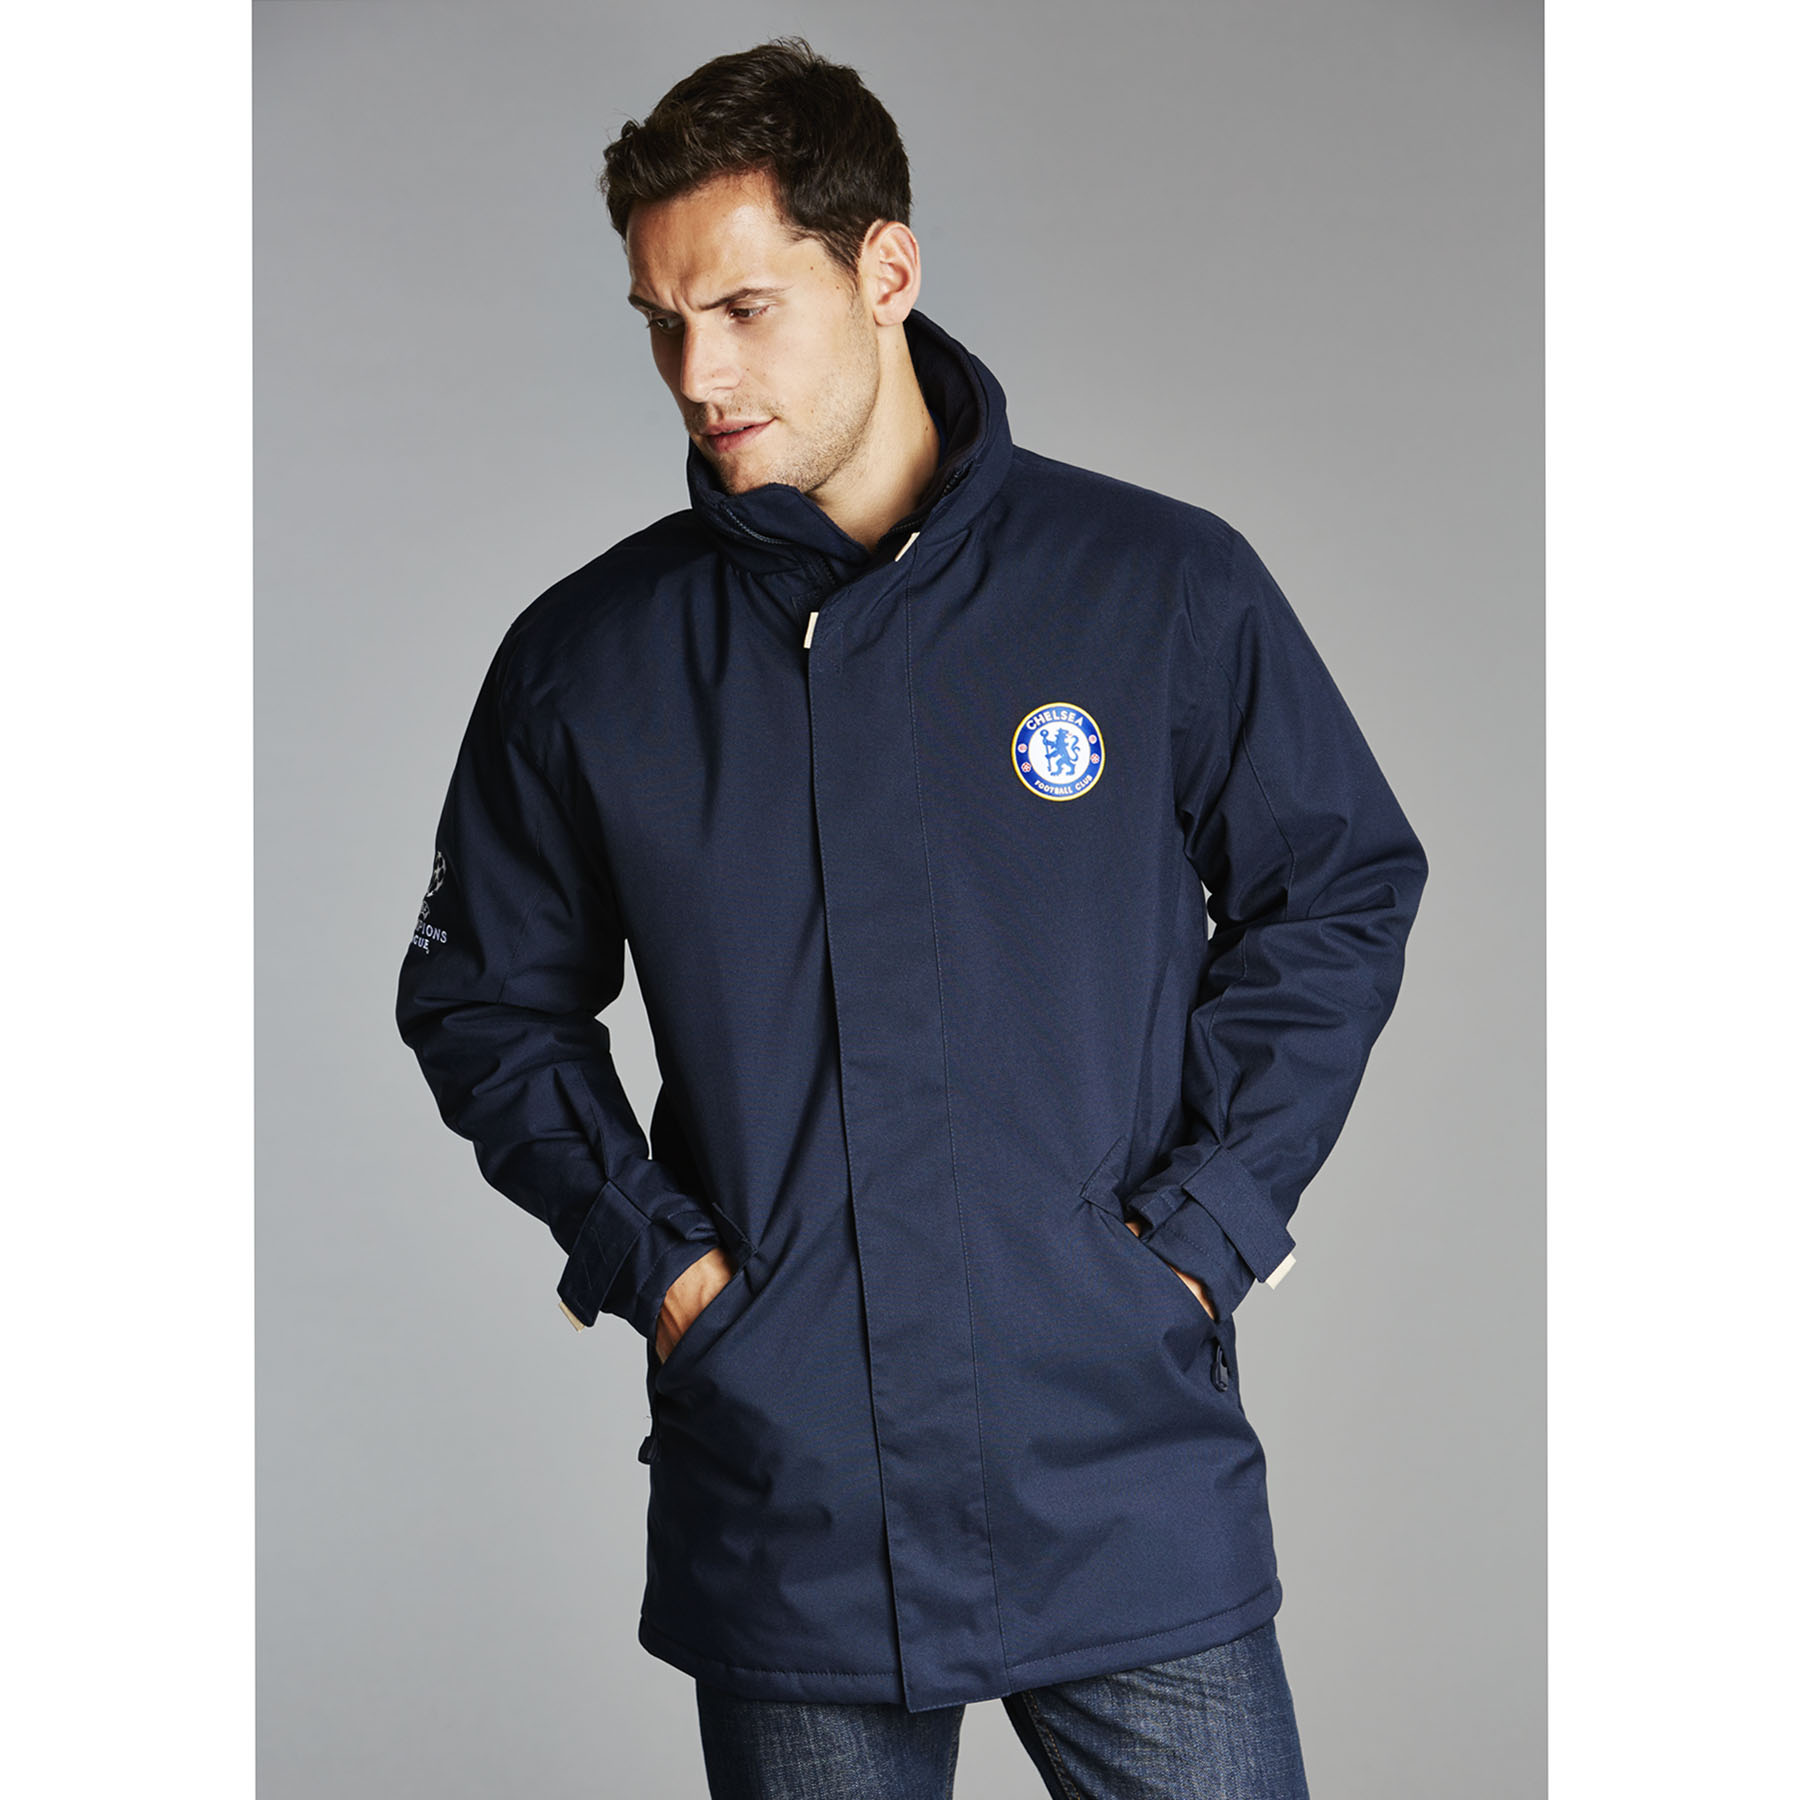 Chelsea UEFA Champions League Heavy Weight Jacket - Navy - Mens